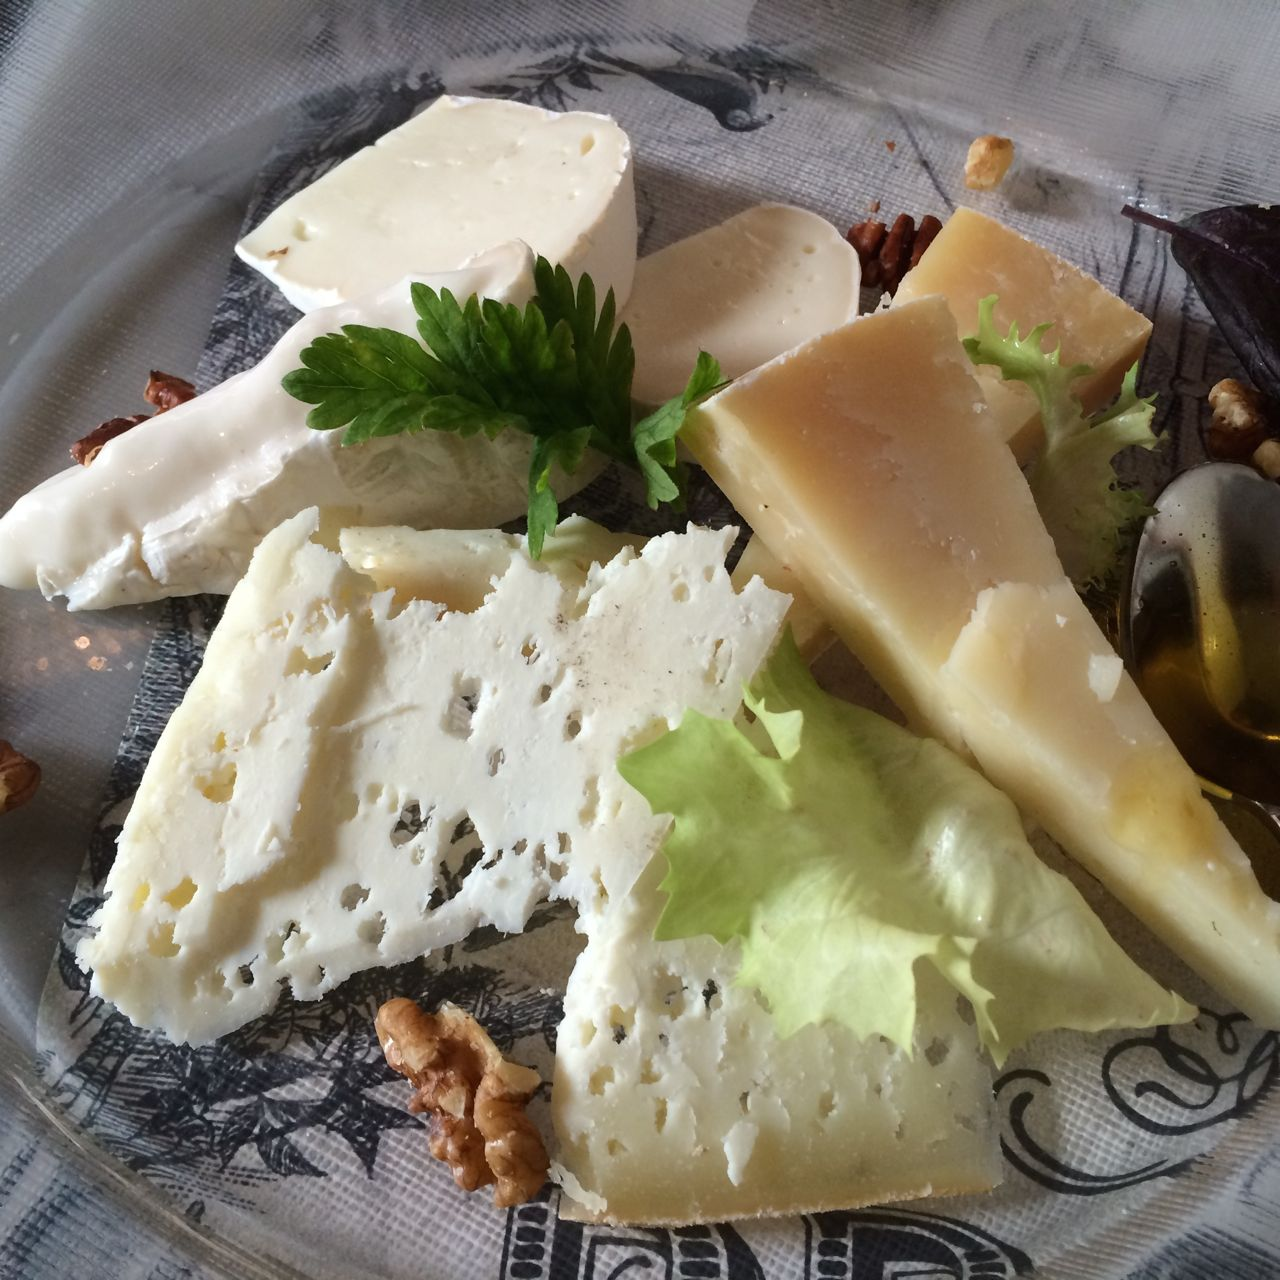 cheese plate at caffe propaganda in rome